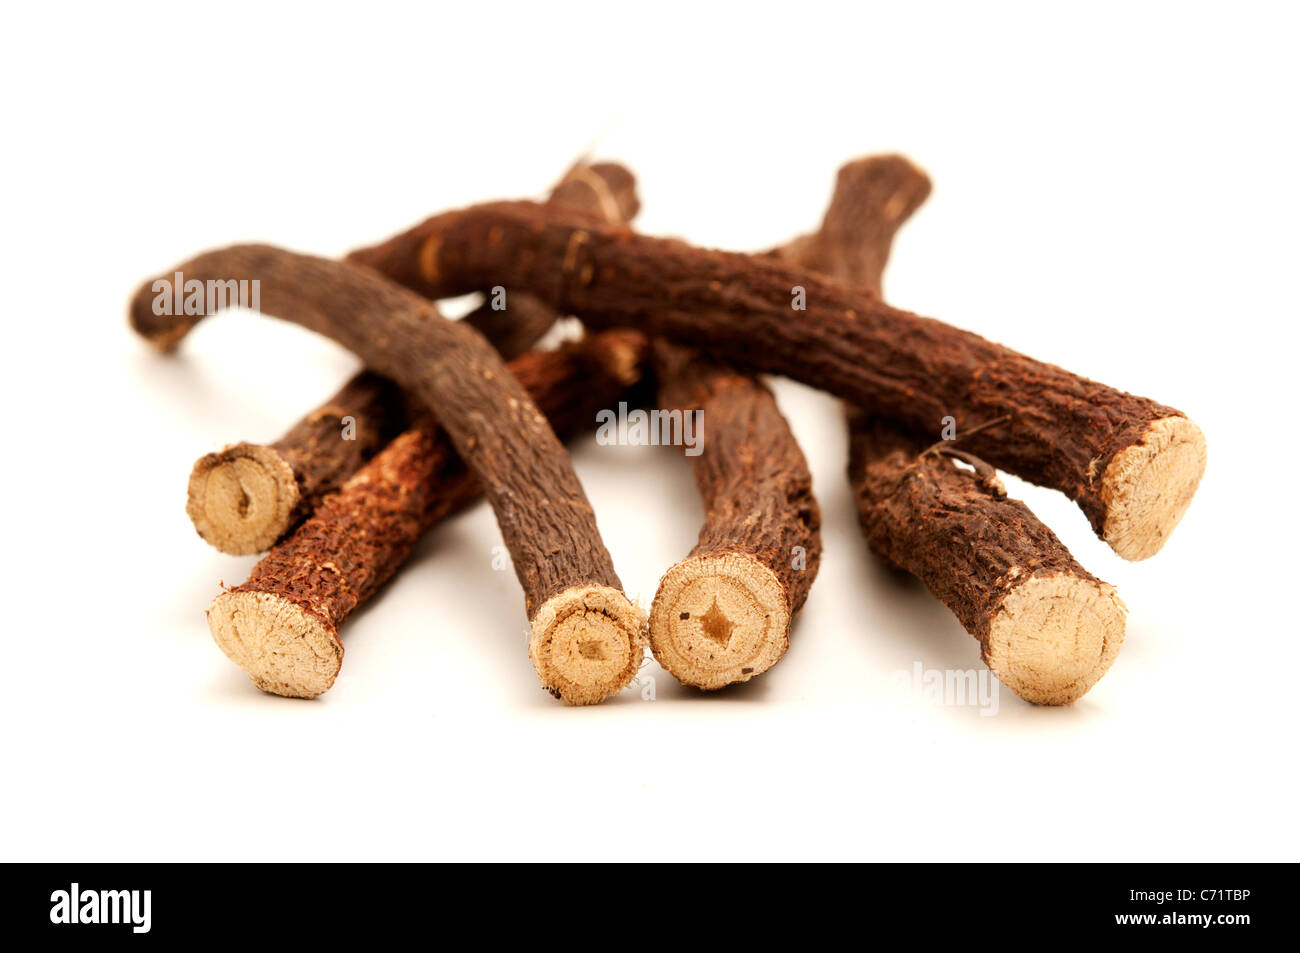 Liquorice roots on a white background - Stock Image